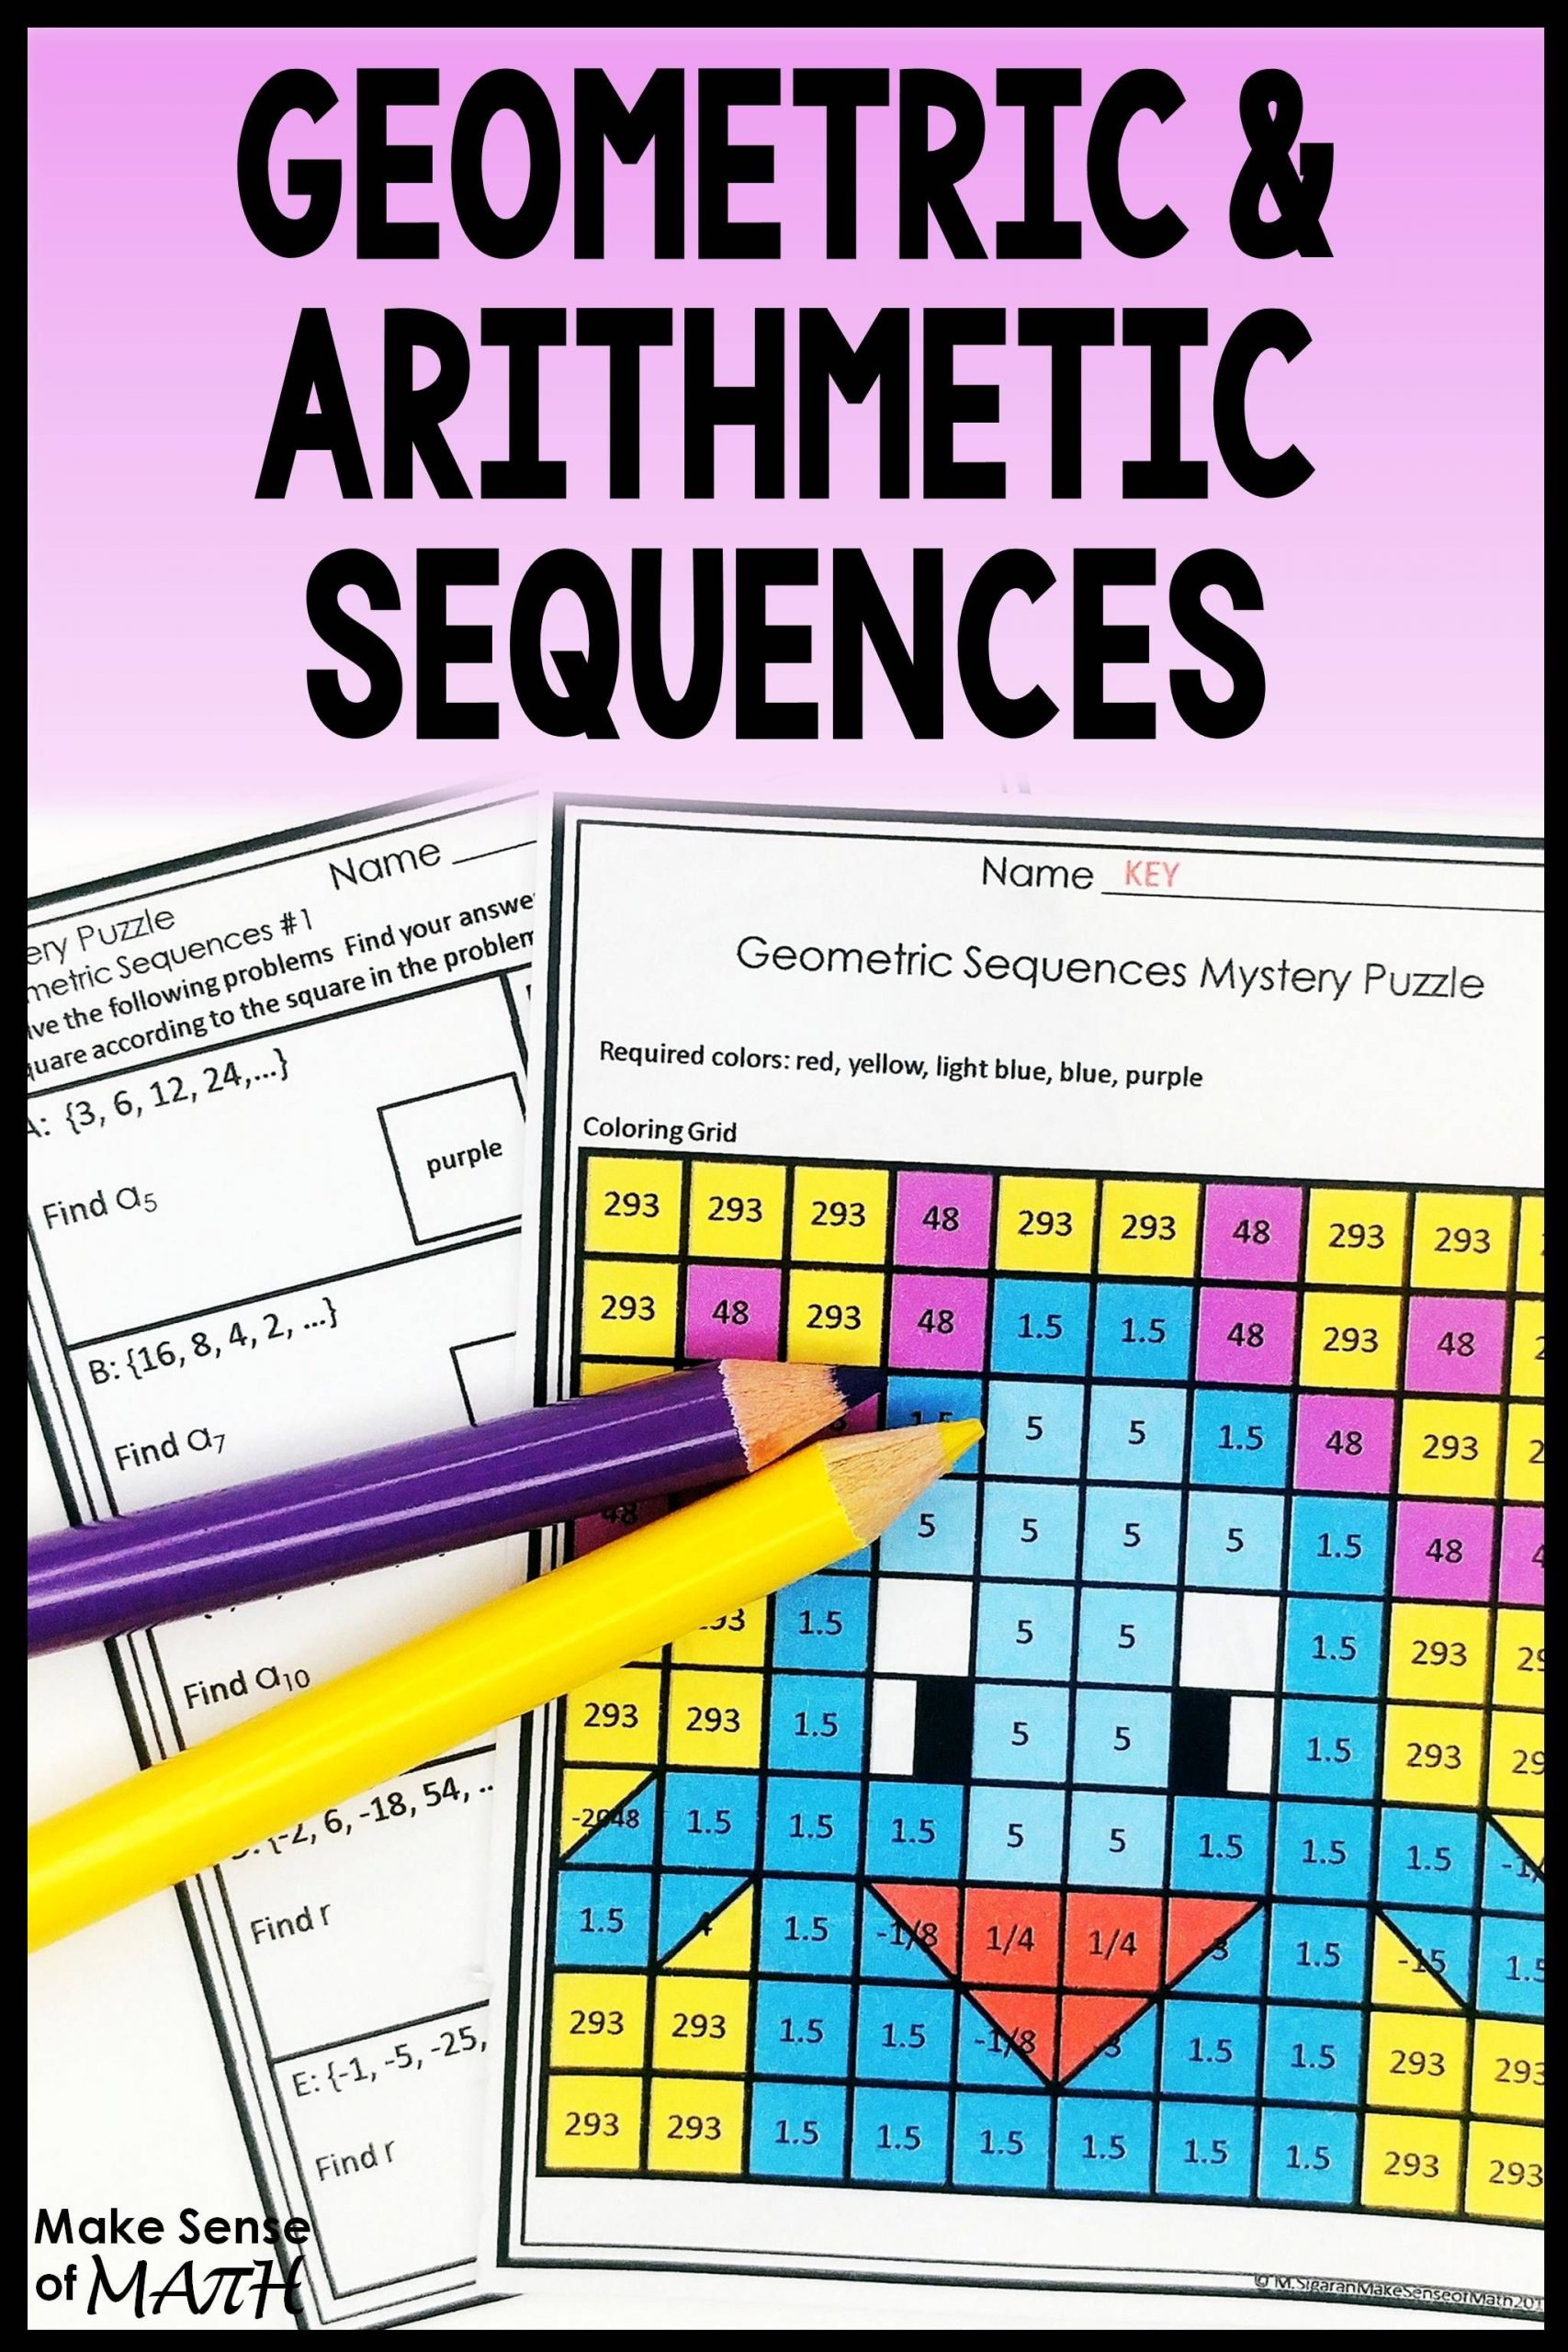 Sequencing Worksheets for Middle School Geometric Sequences Activity and Arithmetic Sequences